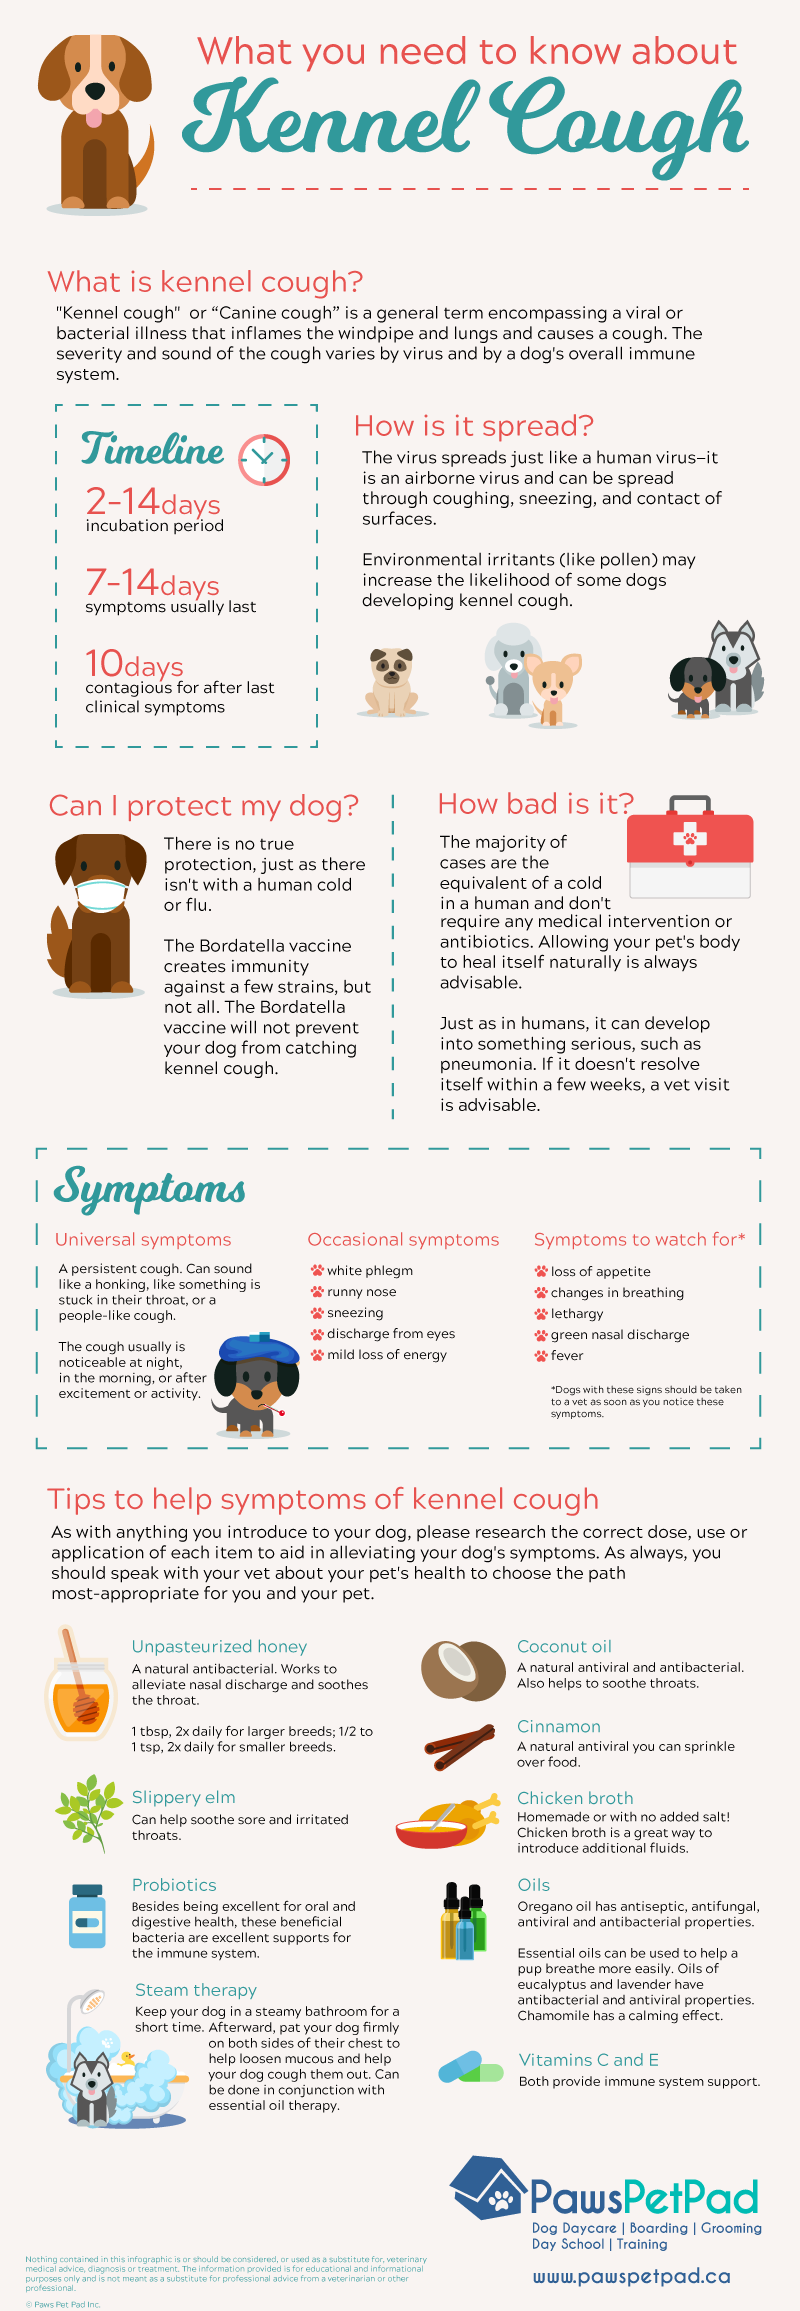 What you need to know about kennel cough infographic